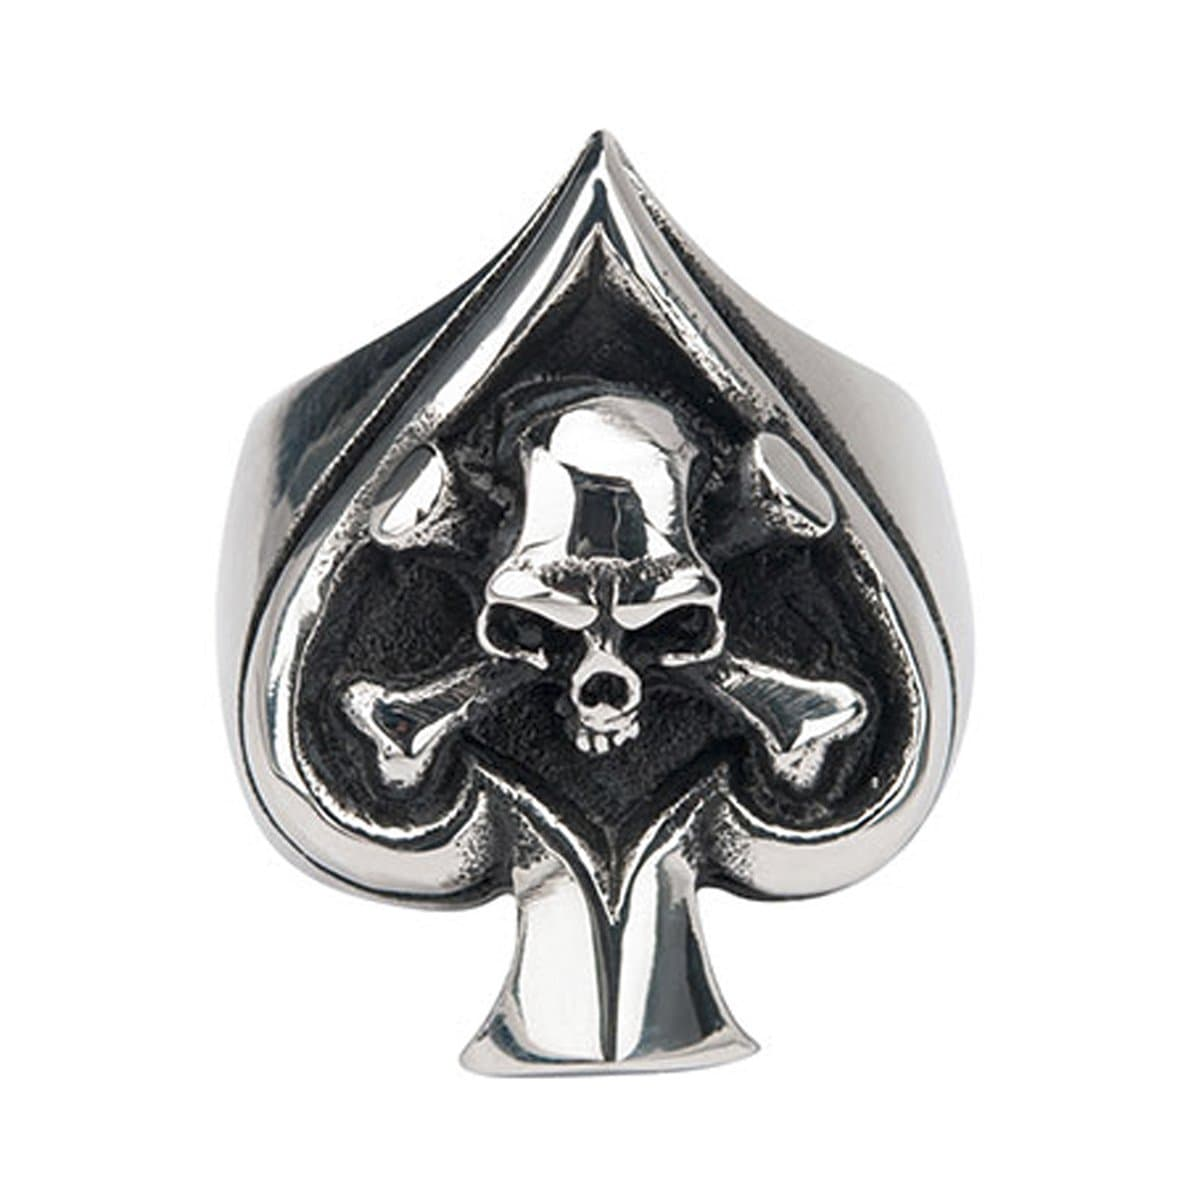 Darkened Silver Stainless Steel Spade with Skull Ring - Inox Jewelry India